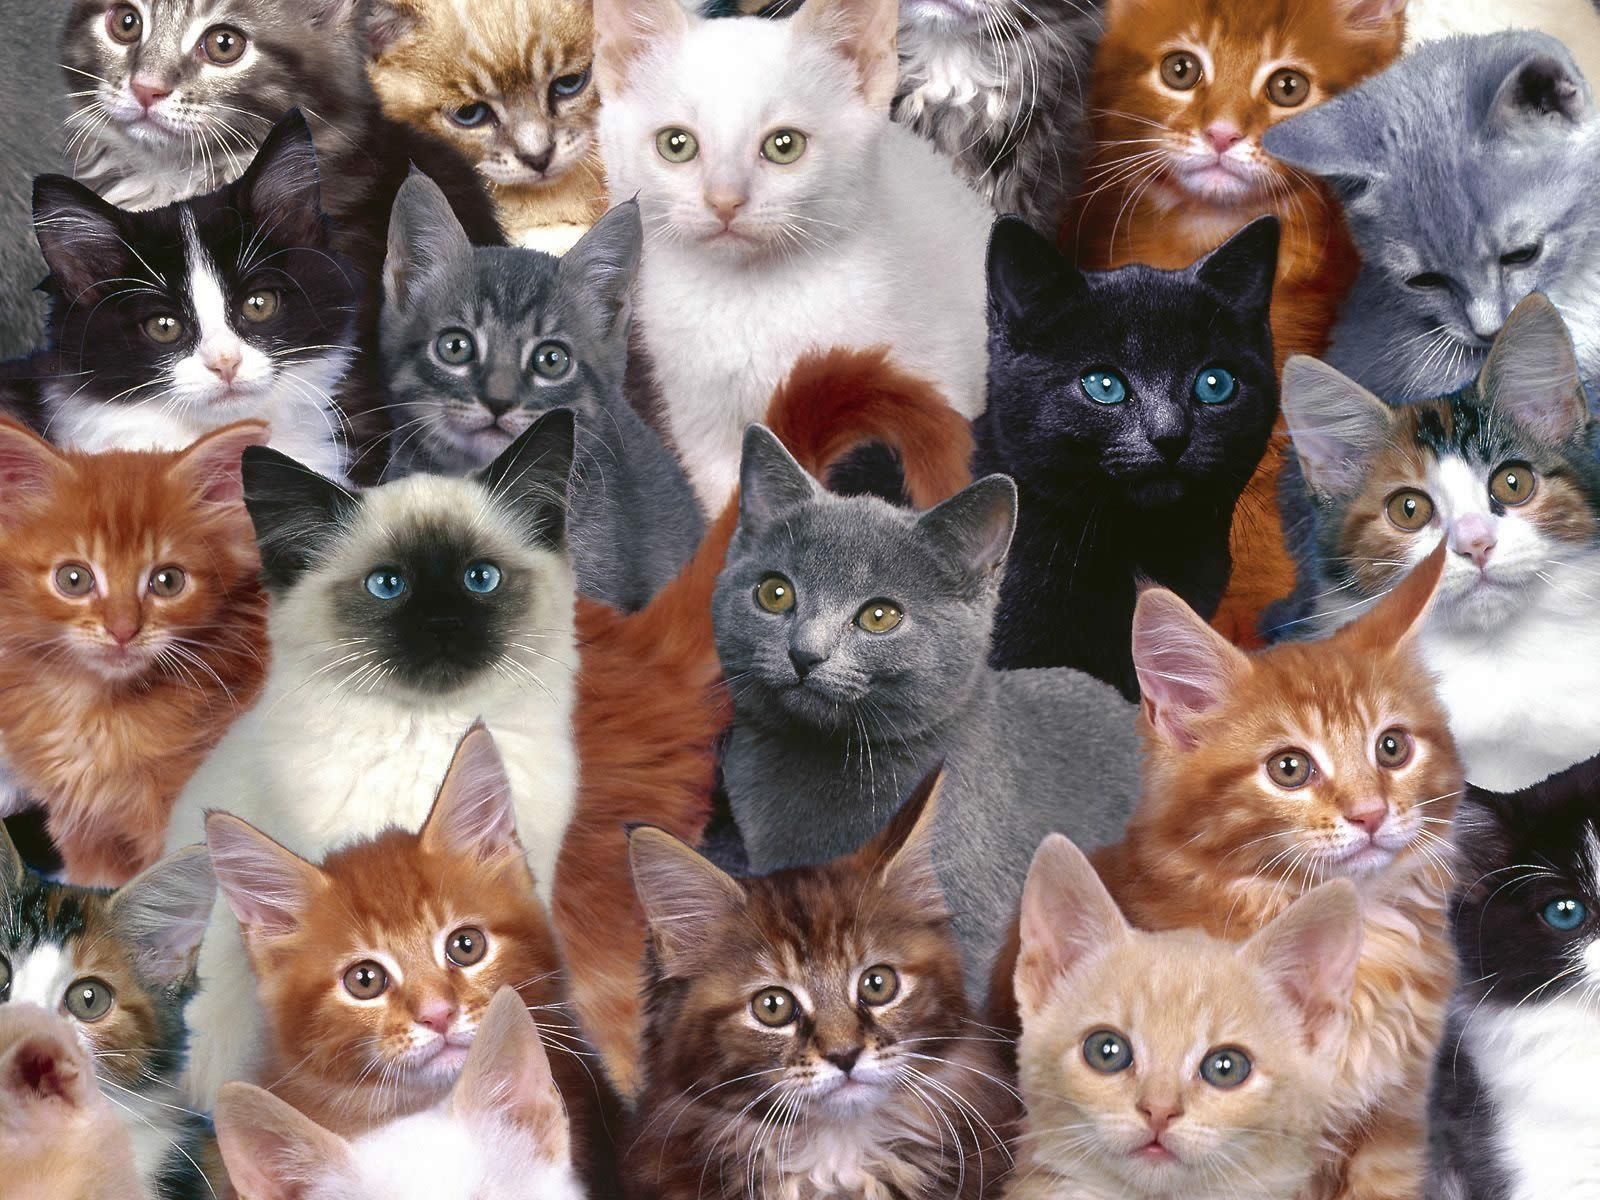 Best Cats Images On Pinterest Bebe Cute Cats And Funny Animals - 35 cats pulling ridiculous faces imaginable